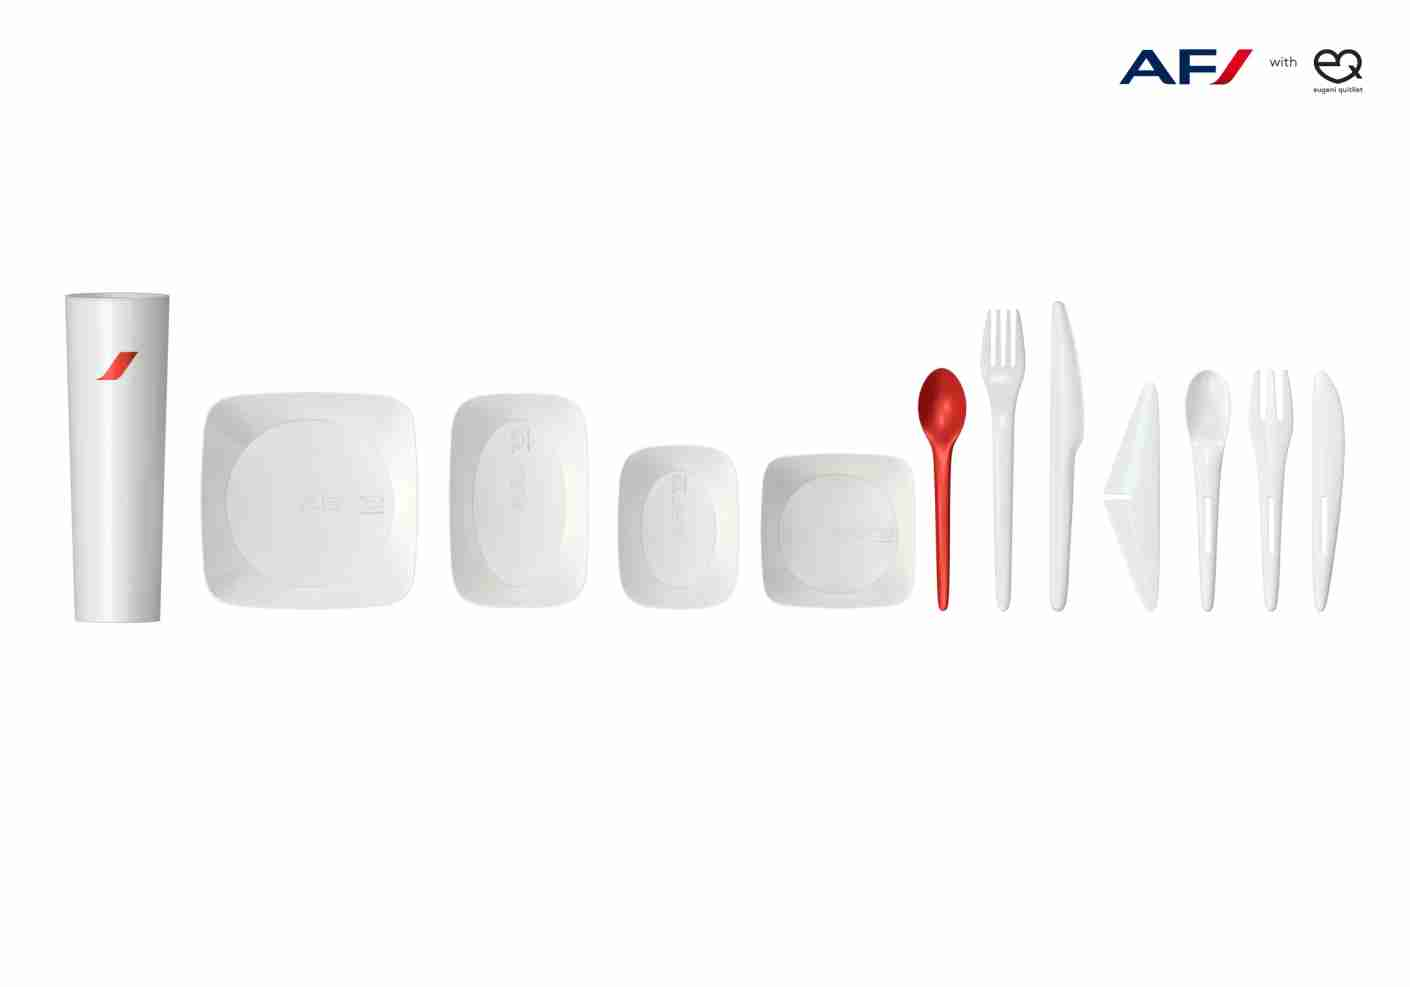 The new range of dishes and utensils Quitllet designed for Air France. Image courtesy of Eugeni Quitllet.